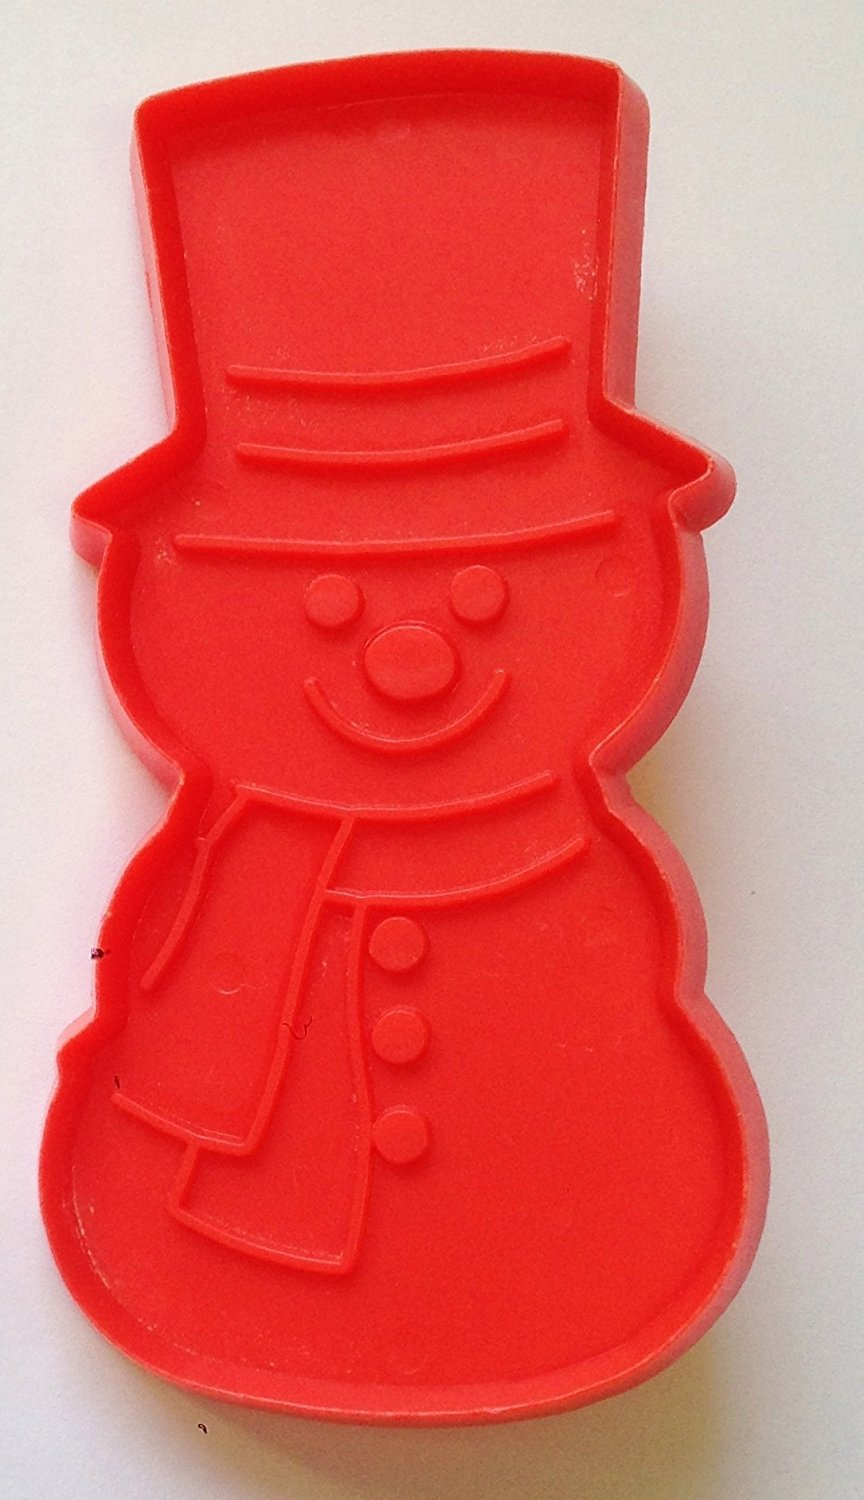 "1970's SNOWMAN Christmas Cookie Cutter by HALLMARK (4 1/2"" Tall)"